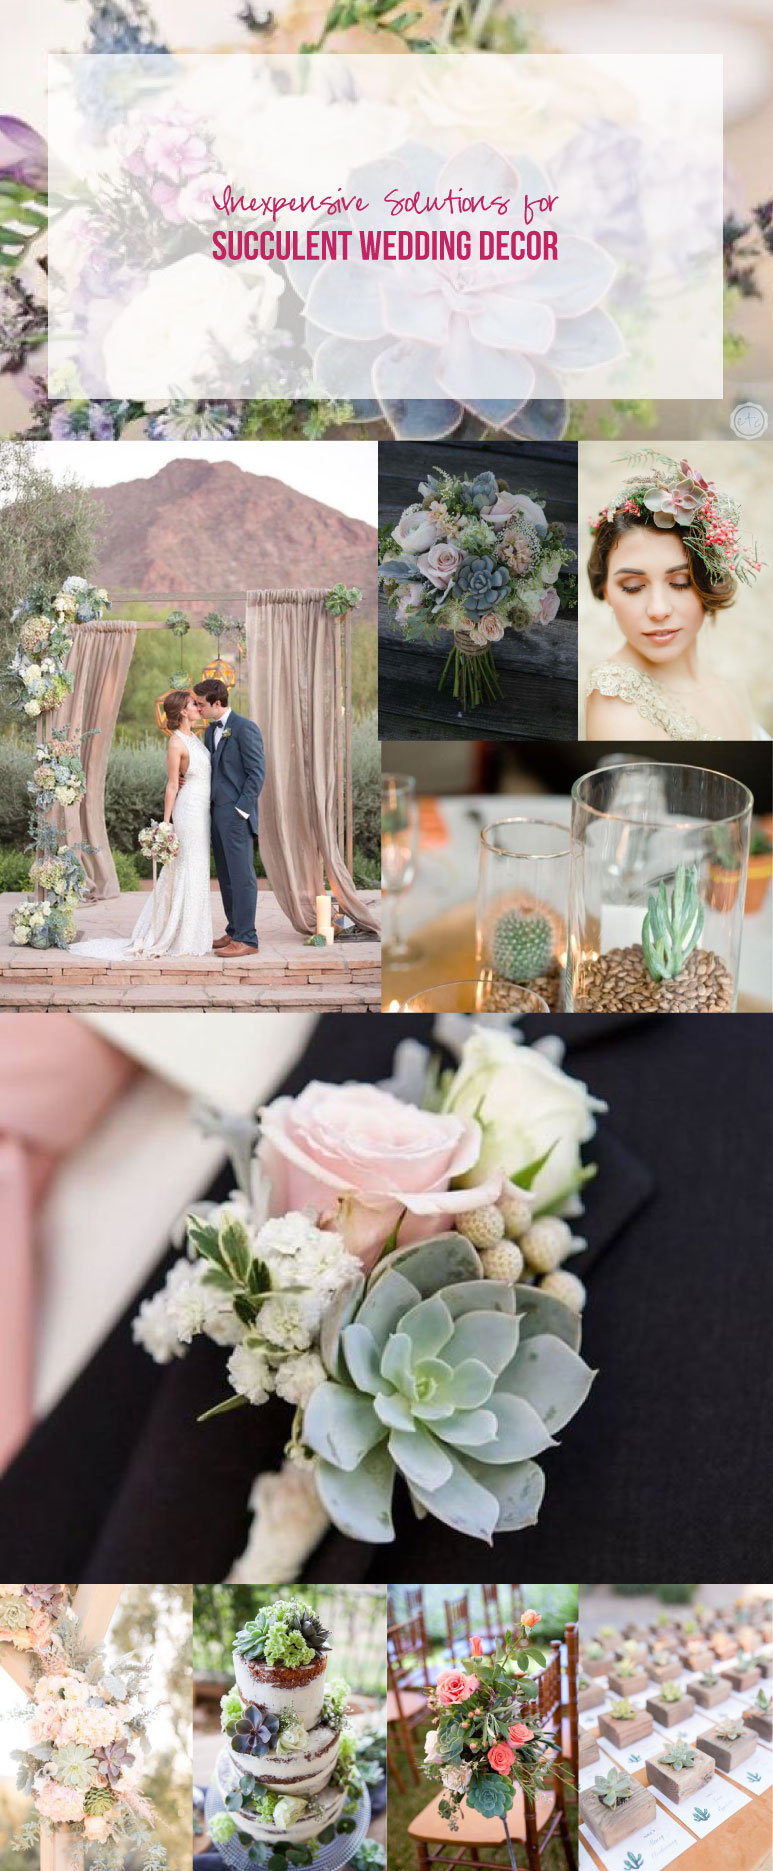 Inexpensive Solutions For Succulent Wedding Decor Happily Ever After Etc